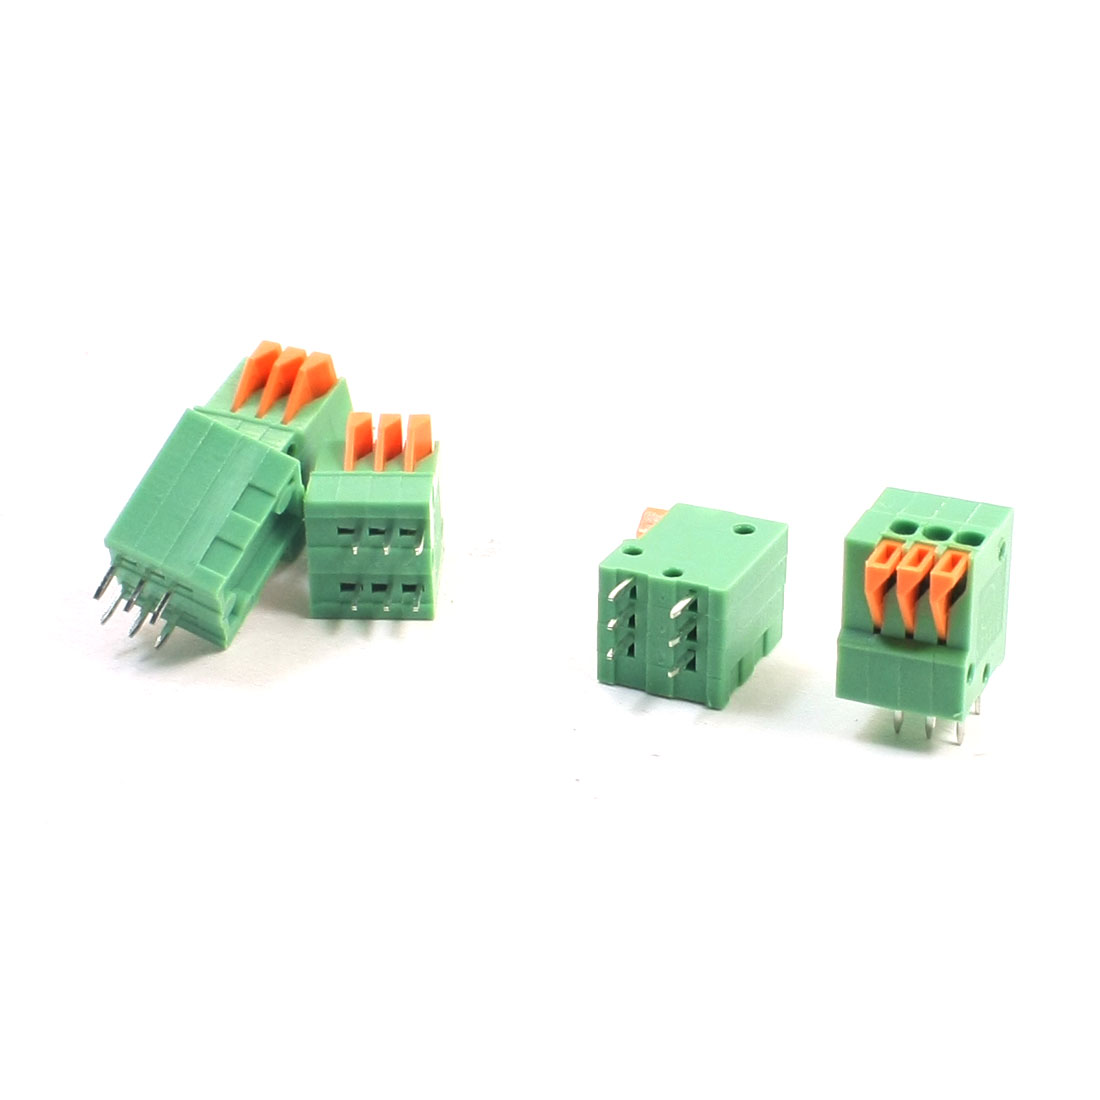 5Pcs 2.54mm Pitch 6-Pin 3-Bit 3-Position DIP Pluggable Type PCB Through Hole Screwless Terminal Barrier Block Connector